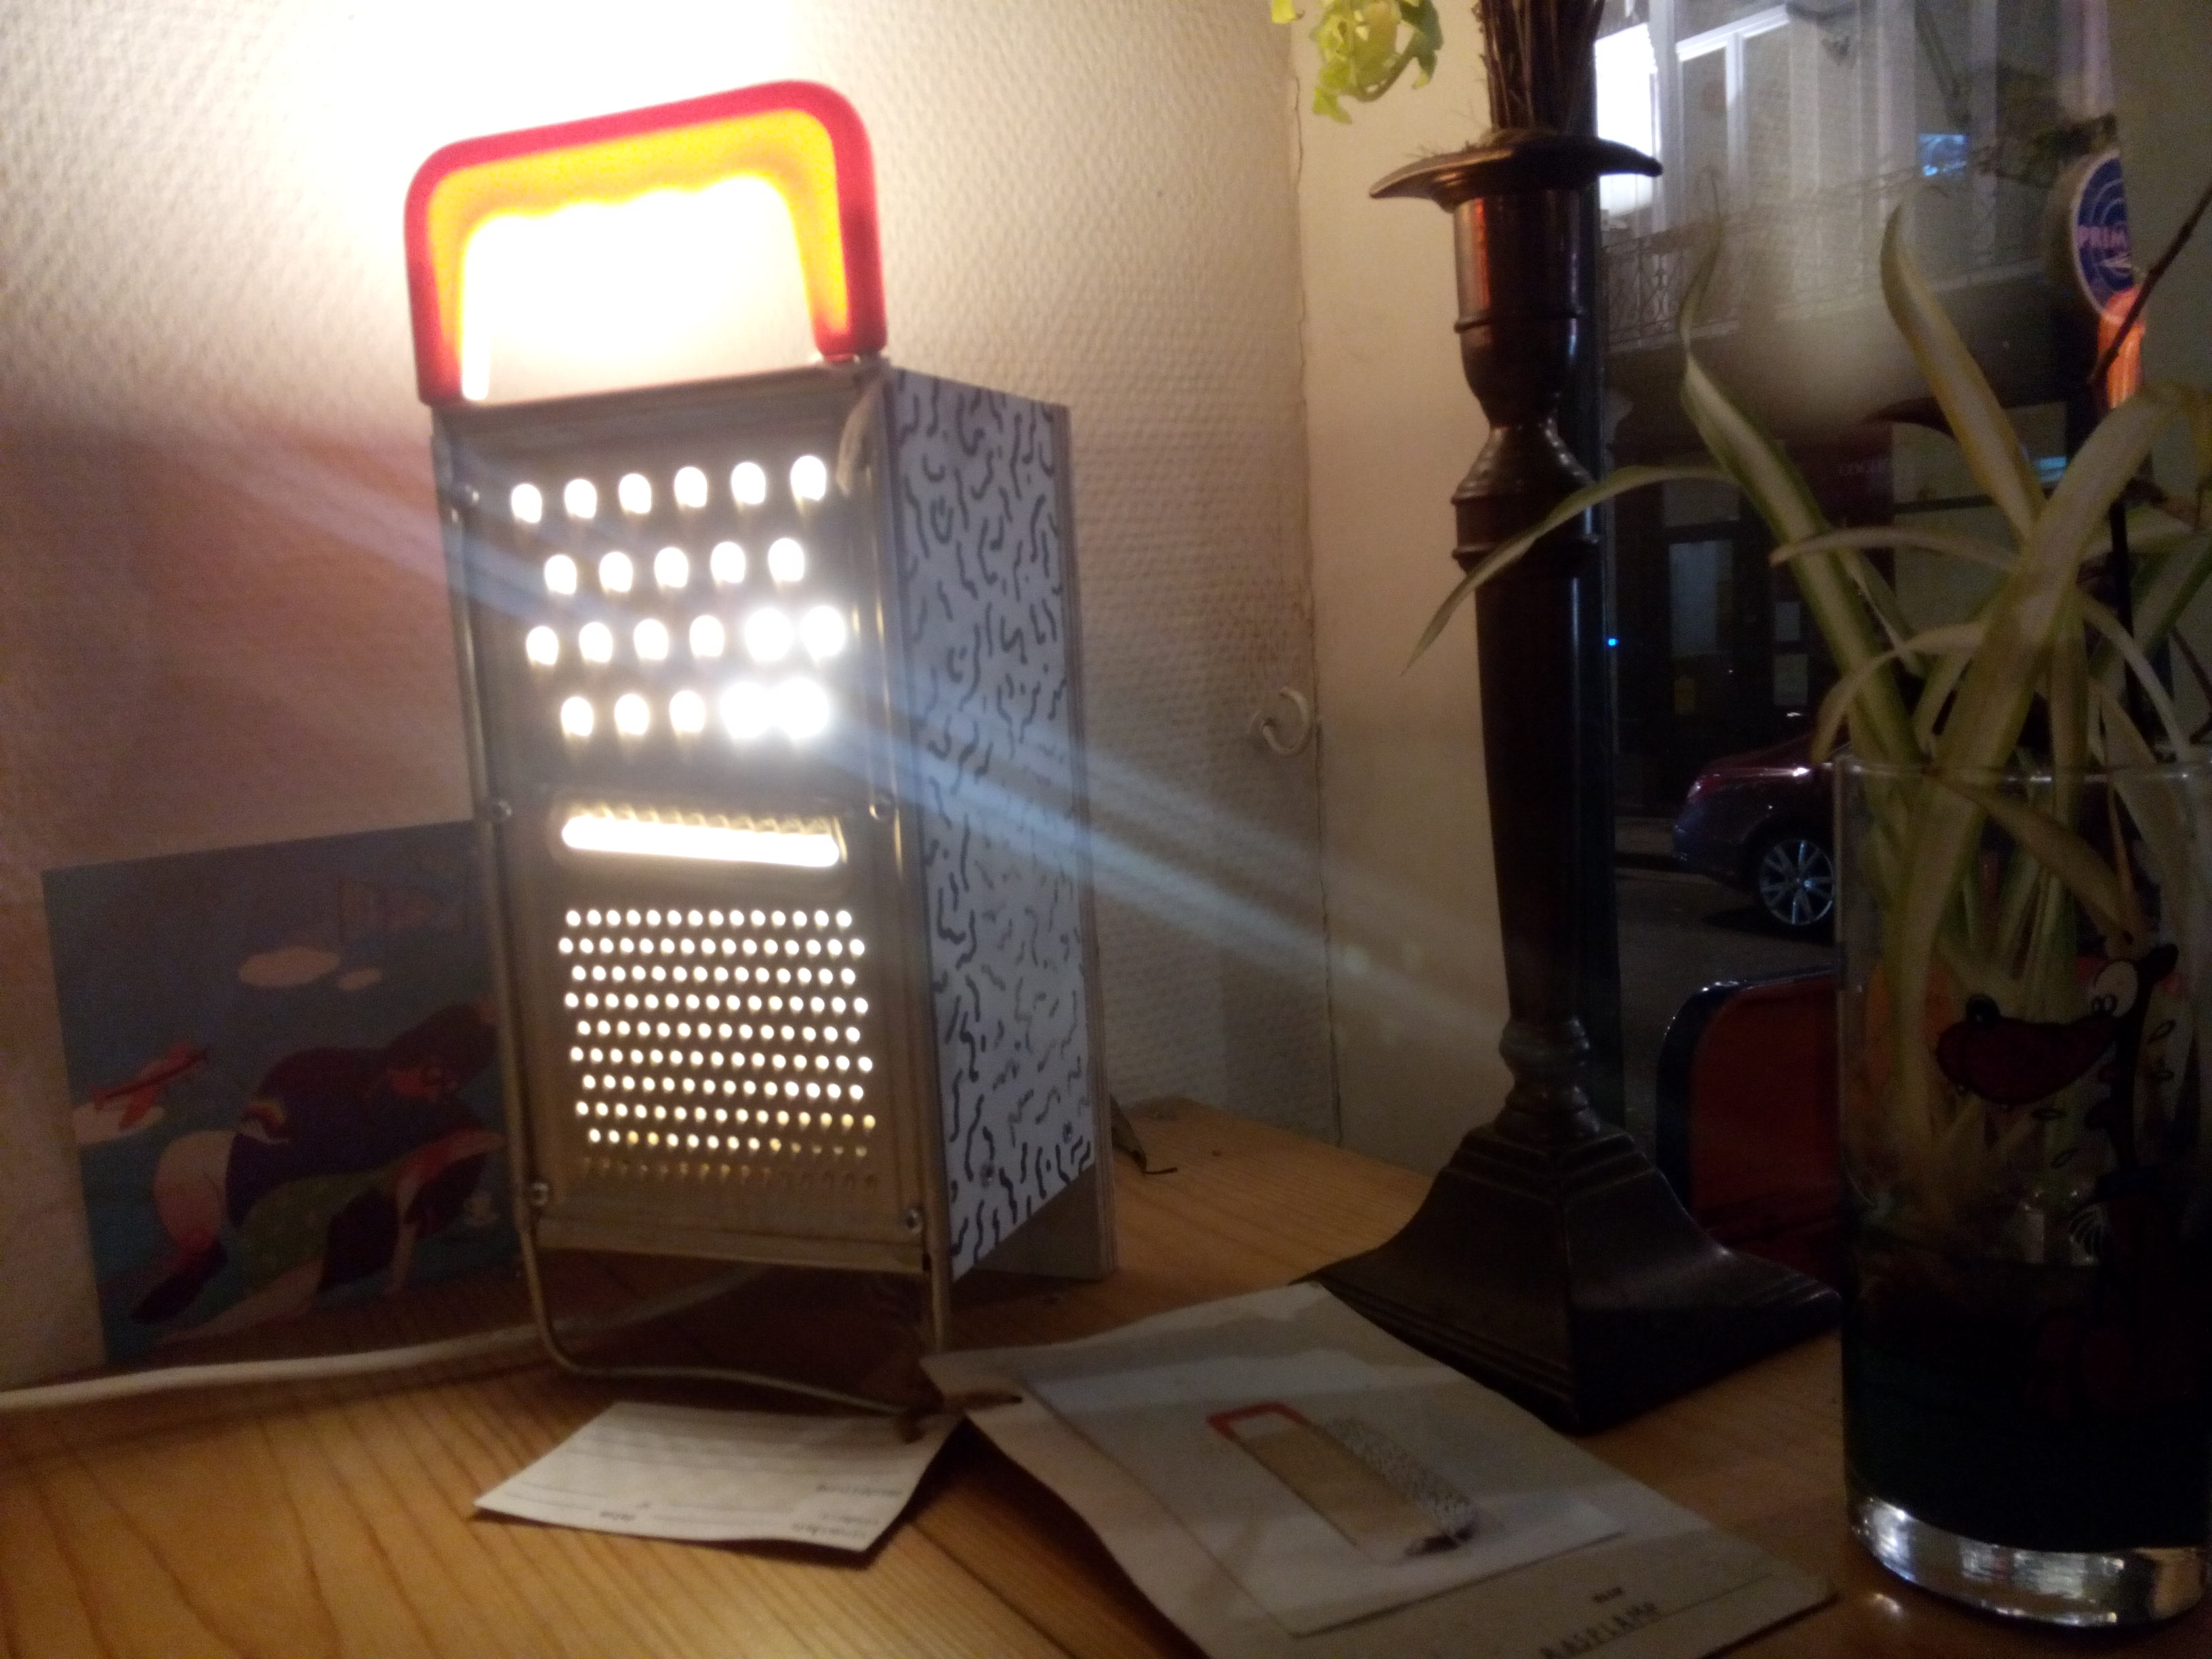 A cheesegrater with light coming from inside